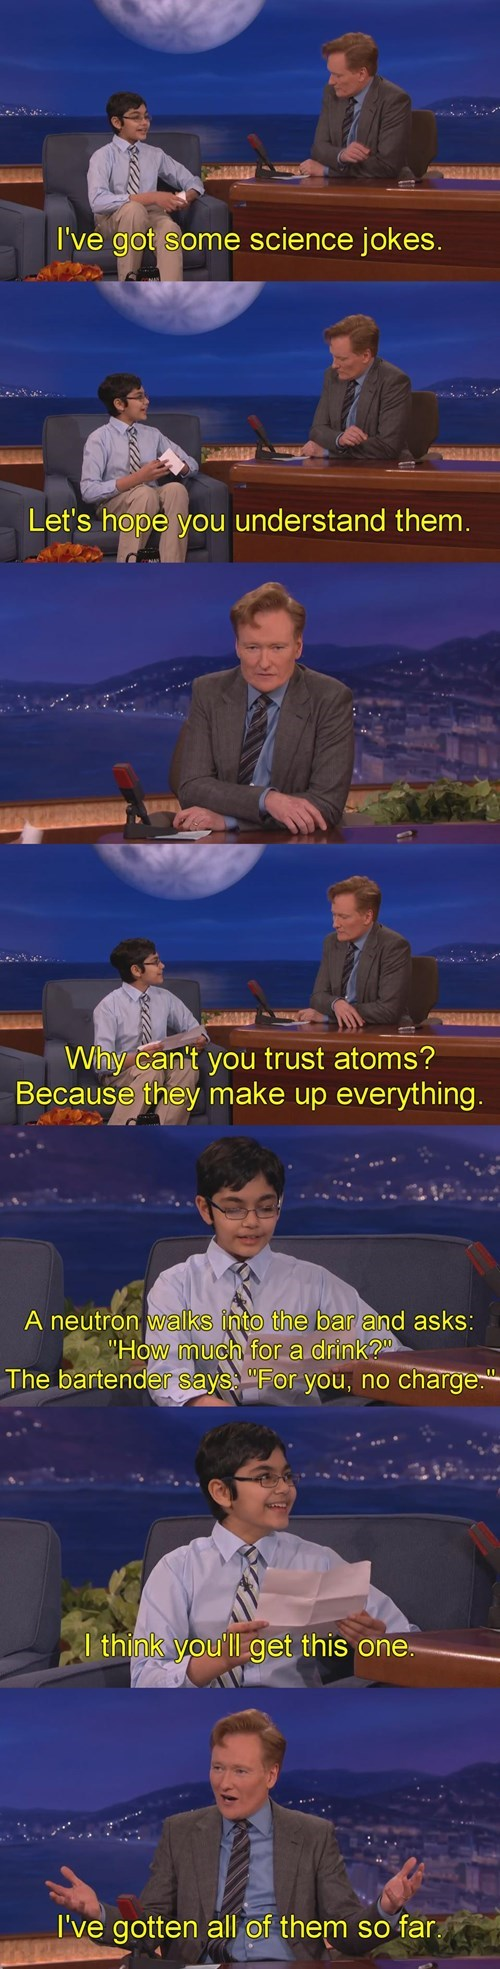 i've got some science jokes, let's hope you understand them, conan o'brian